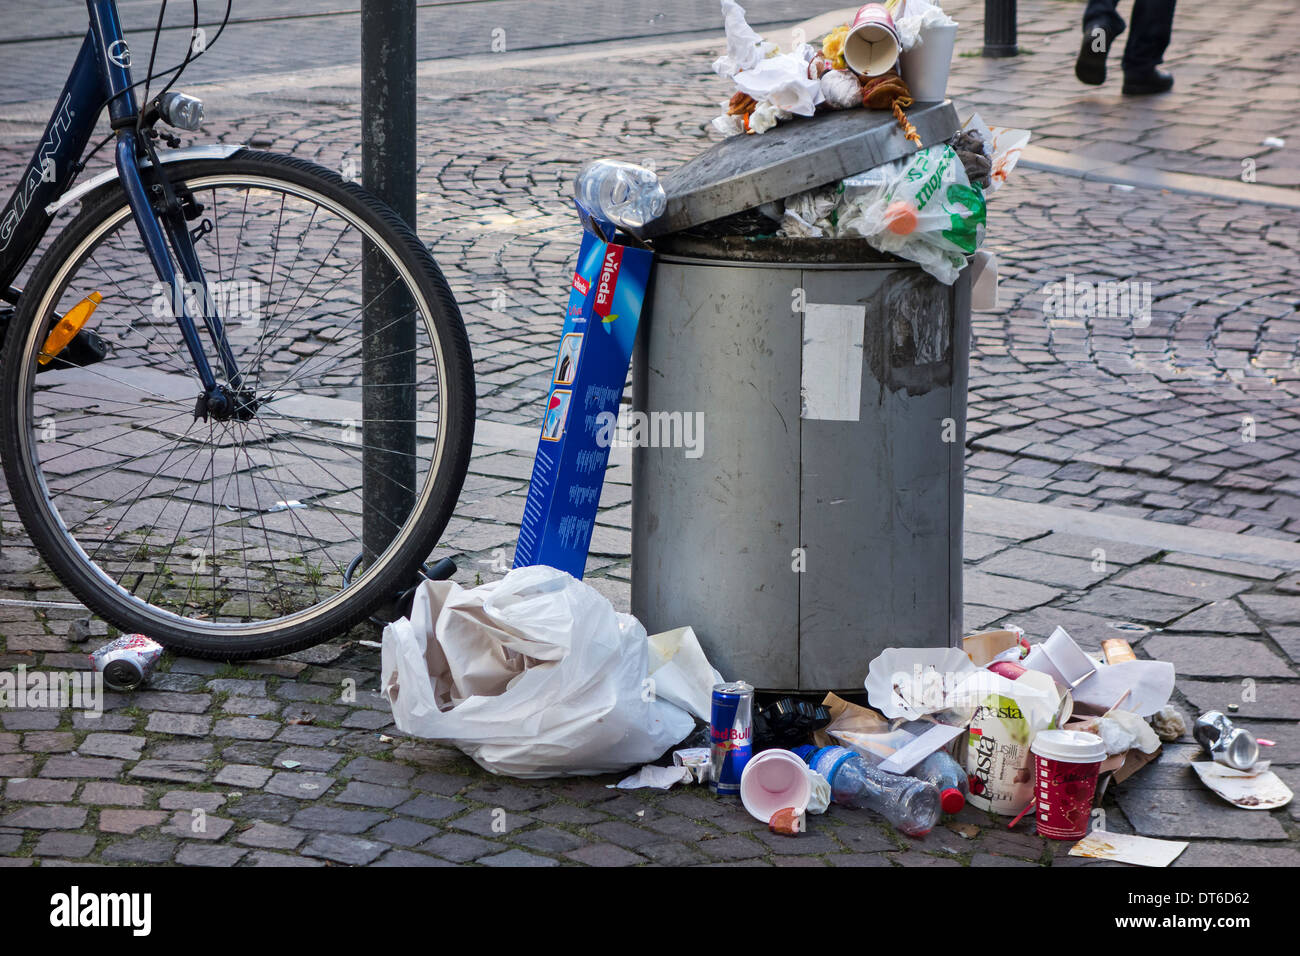 Overfull rubbish bin with trash around and garbage piled on top in city street Stock Photo